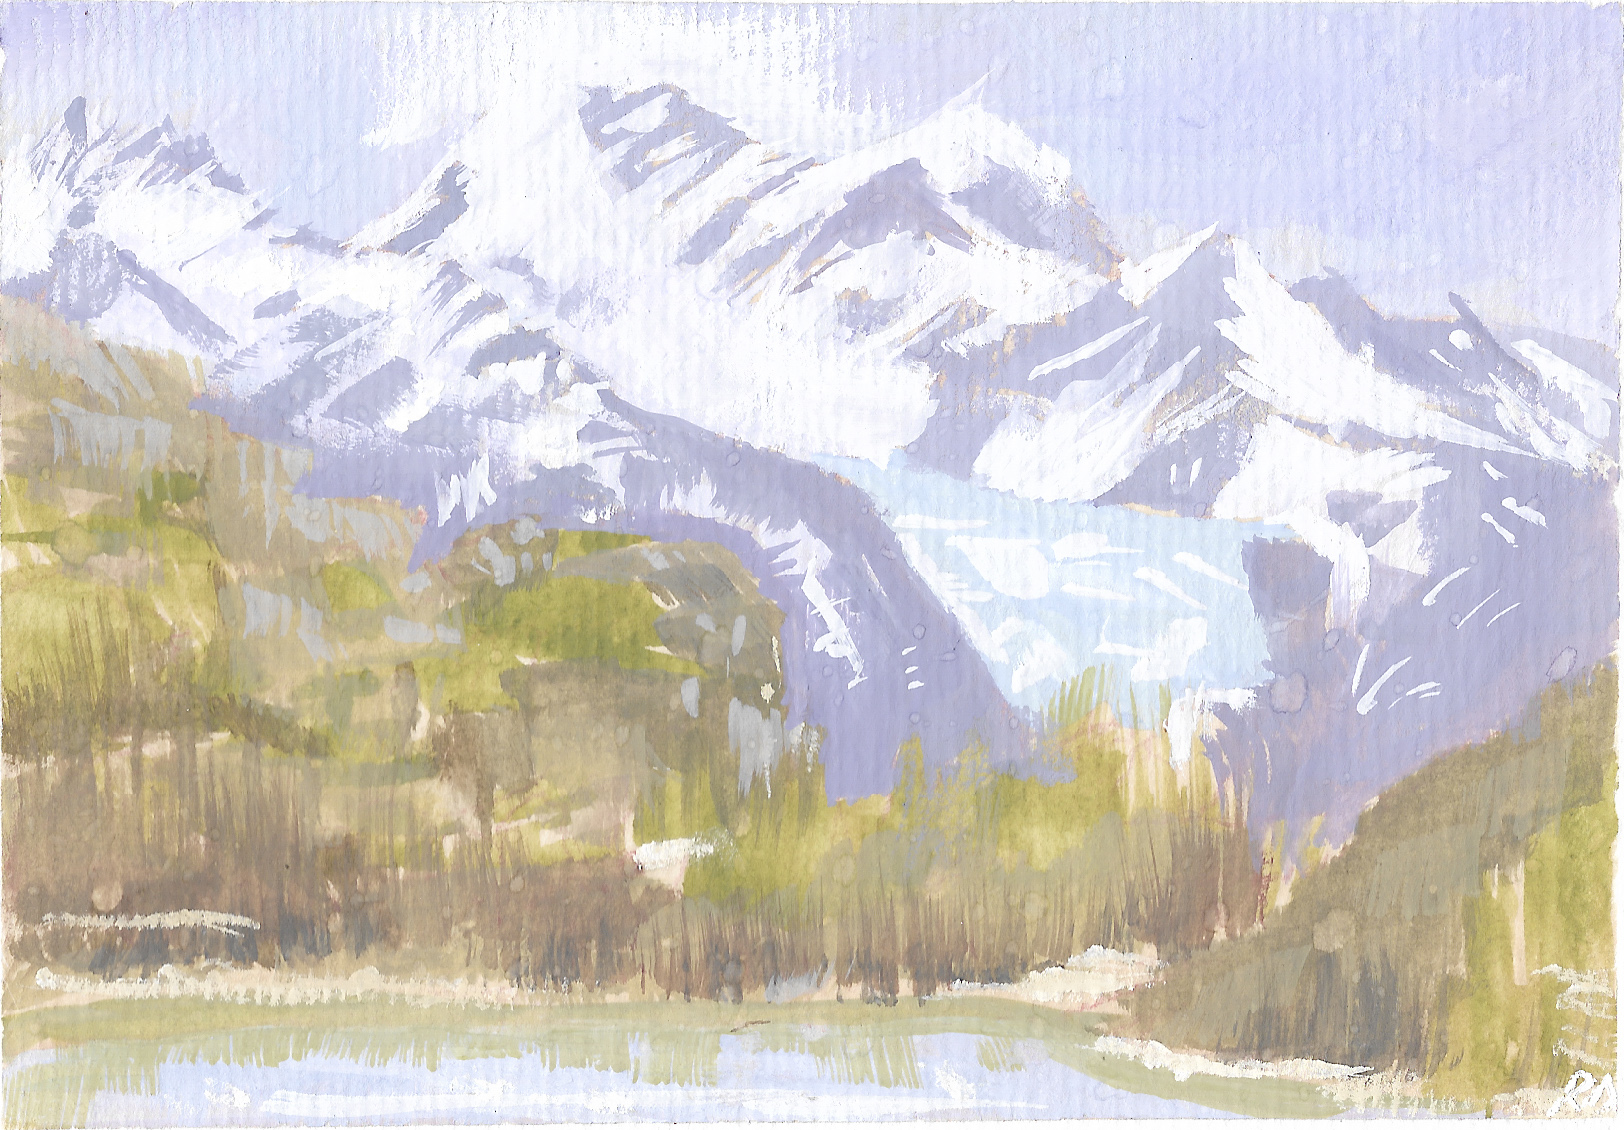 One of my recent plein air (outdoor) paintings in El Chaltén, Patagonia, Argentina. It was freezing cold, and it had started to rain, but I was determined to get a quick study down.